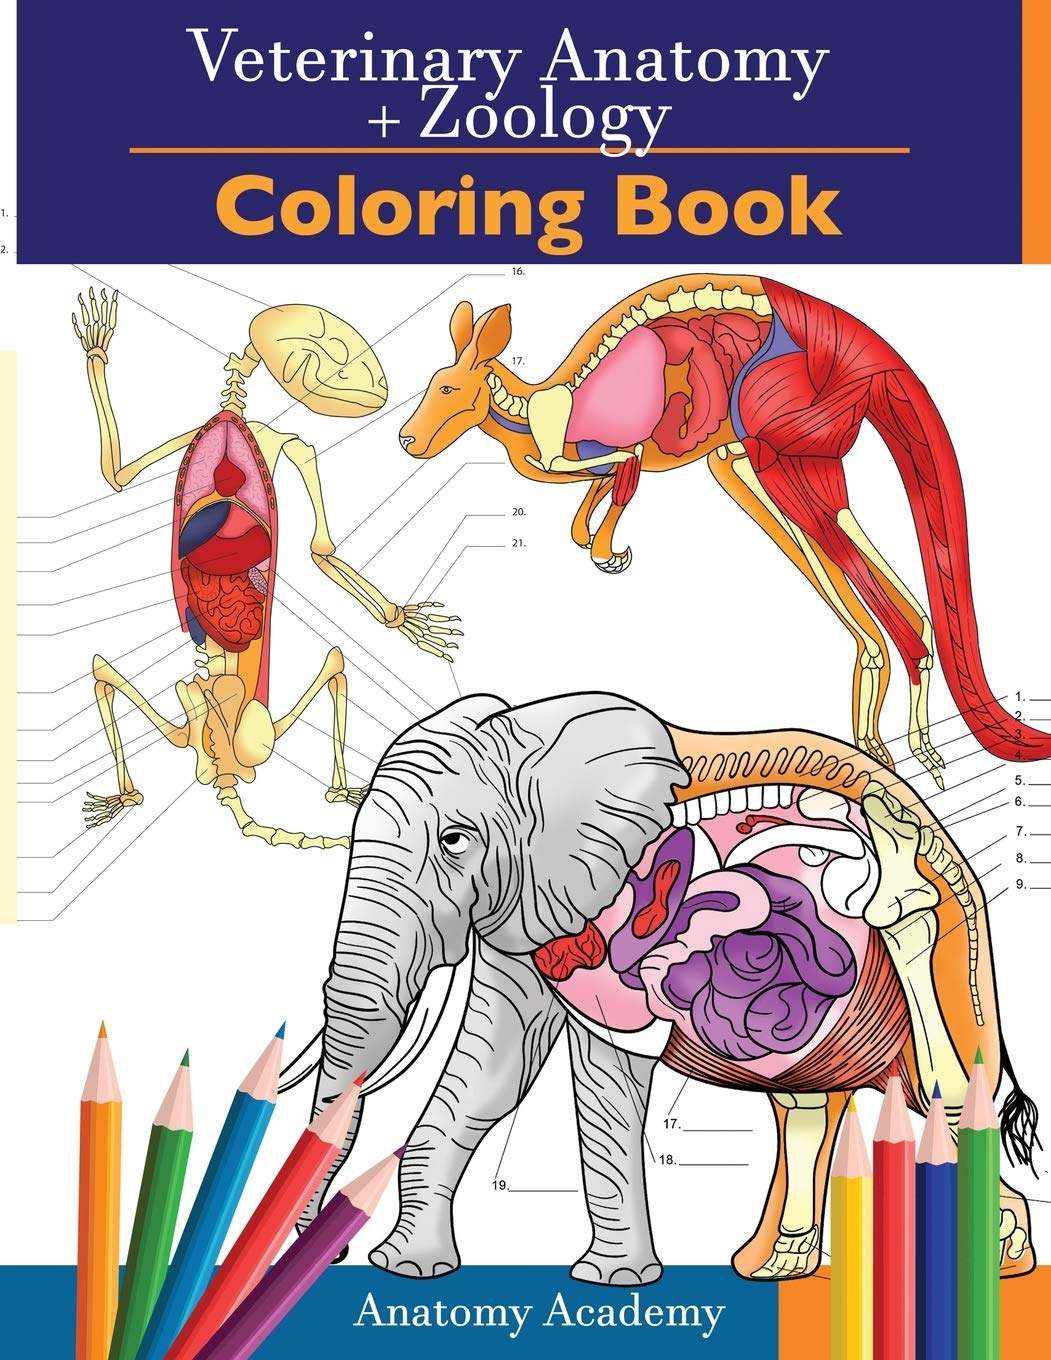 Amazon Com Veterinary Zoology Coloring Book 2 In 1 Compilation Incredibly Detailed Self Test Animal Anatomy Color Workbook Perfect Gift For Vet Students And Animal Lovers 9781914207105 Academy Anatomy Books